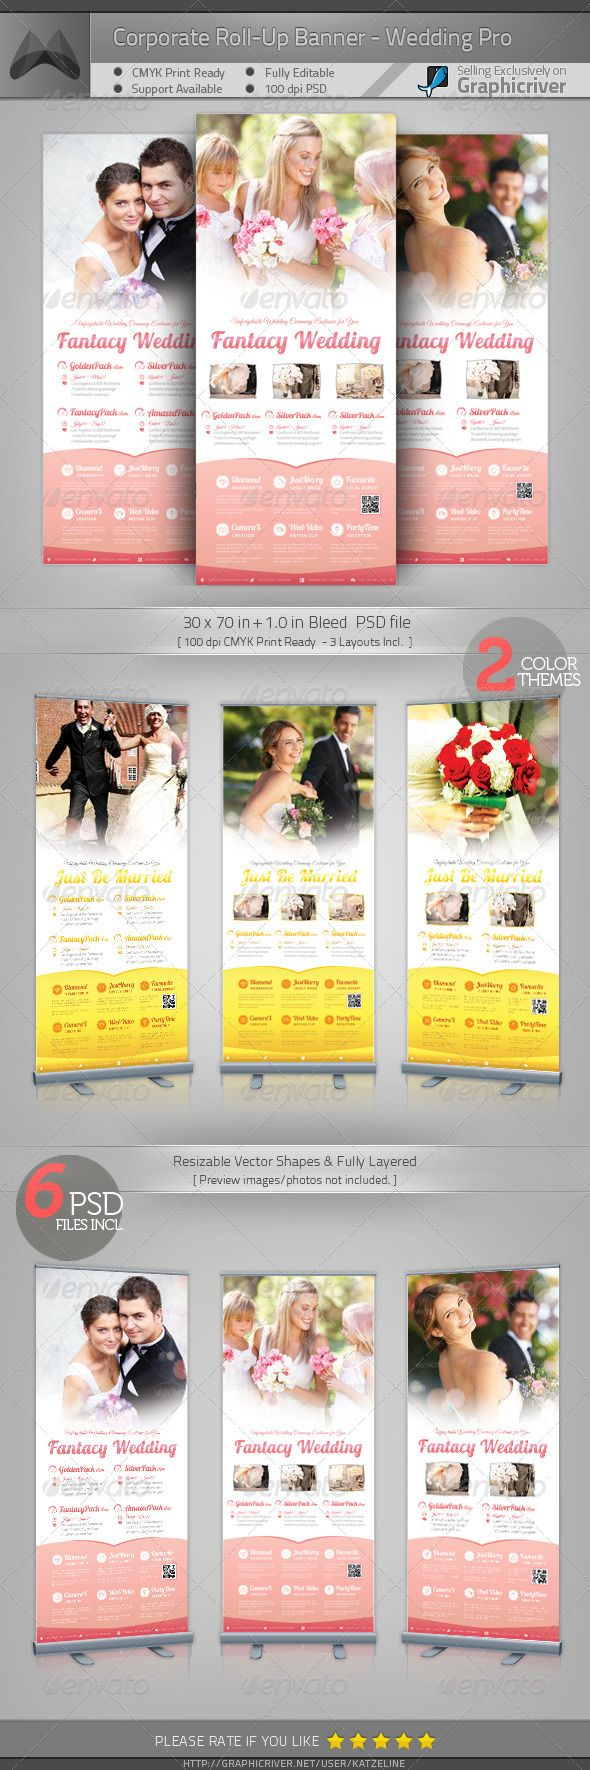 Pin By Best Graphic Design On Roll Up Banner Templates Rollup